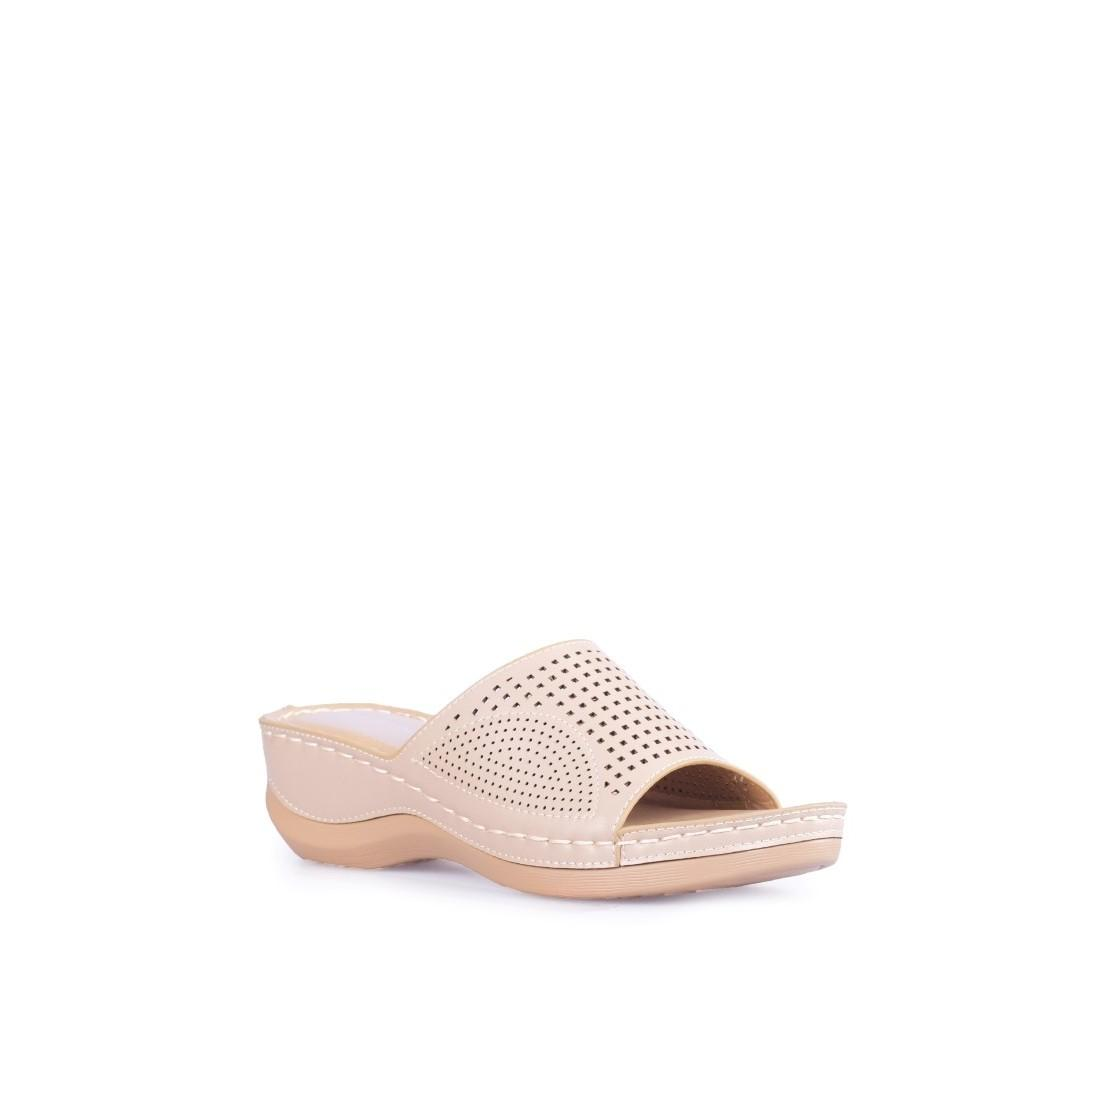 Bettina Sandal Nala - Beige - 2 ...